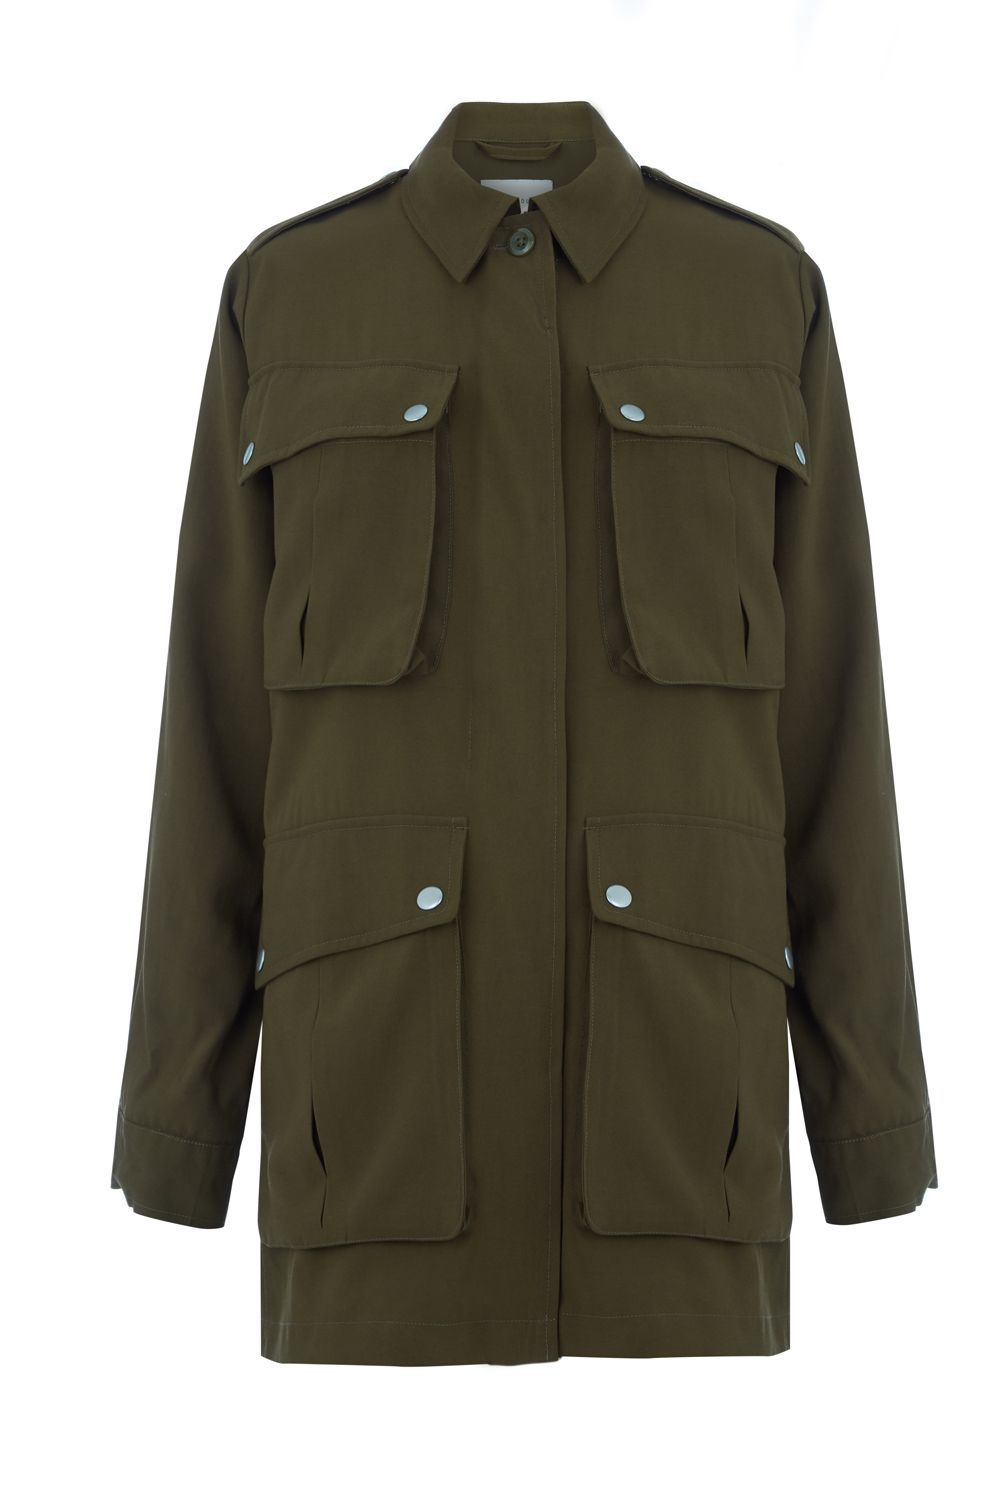 Warehouse Four Pocket Military Jacket, Khaki